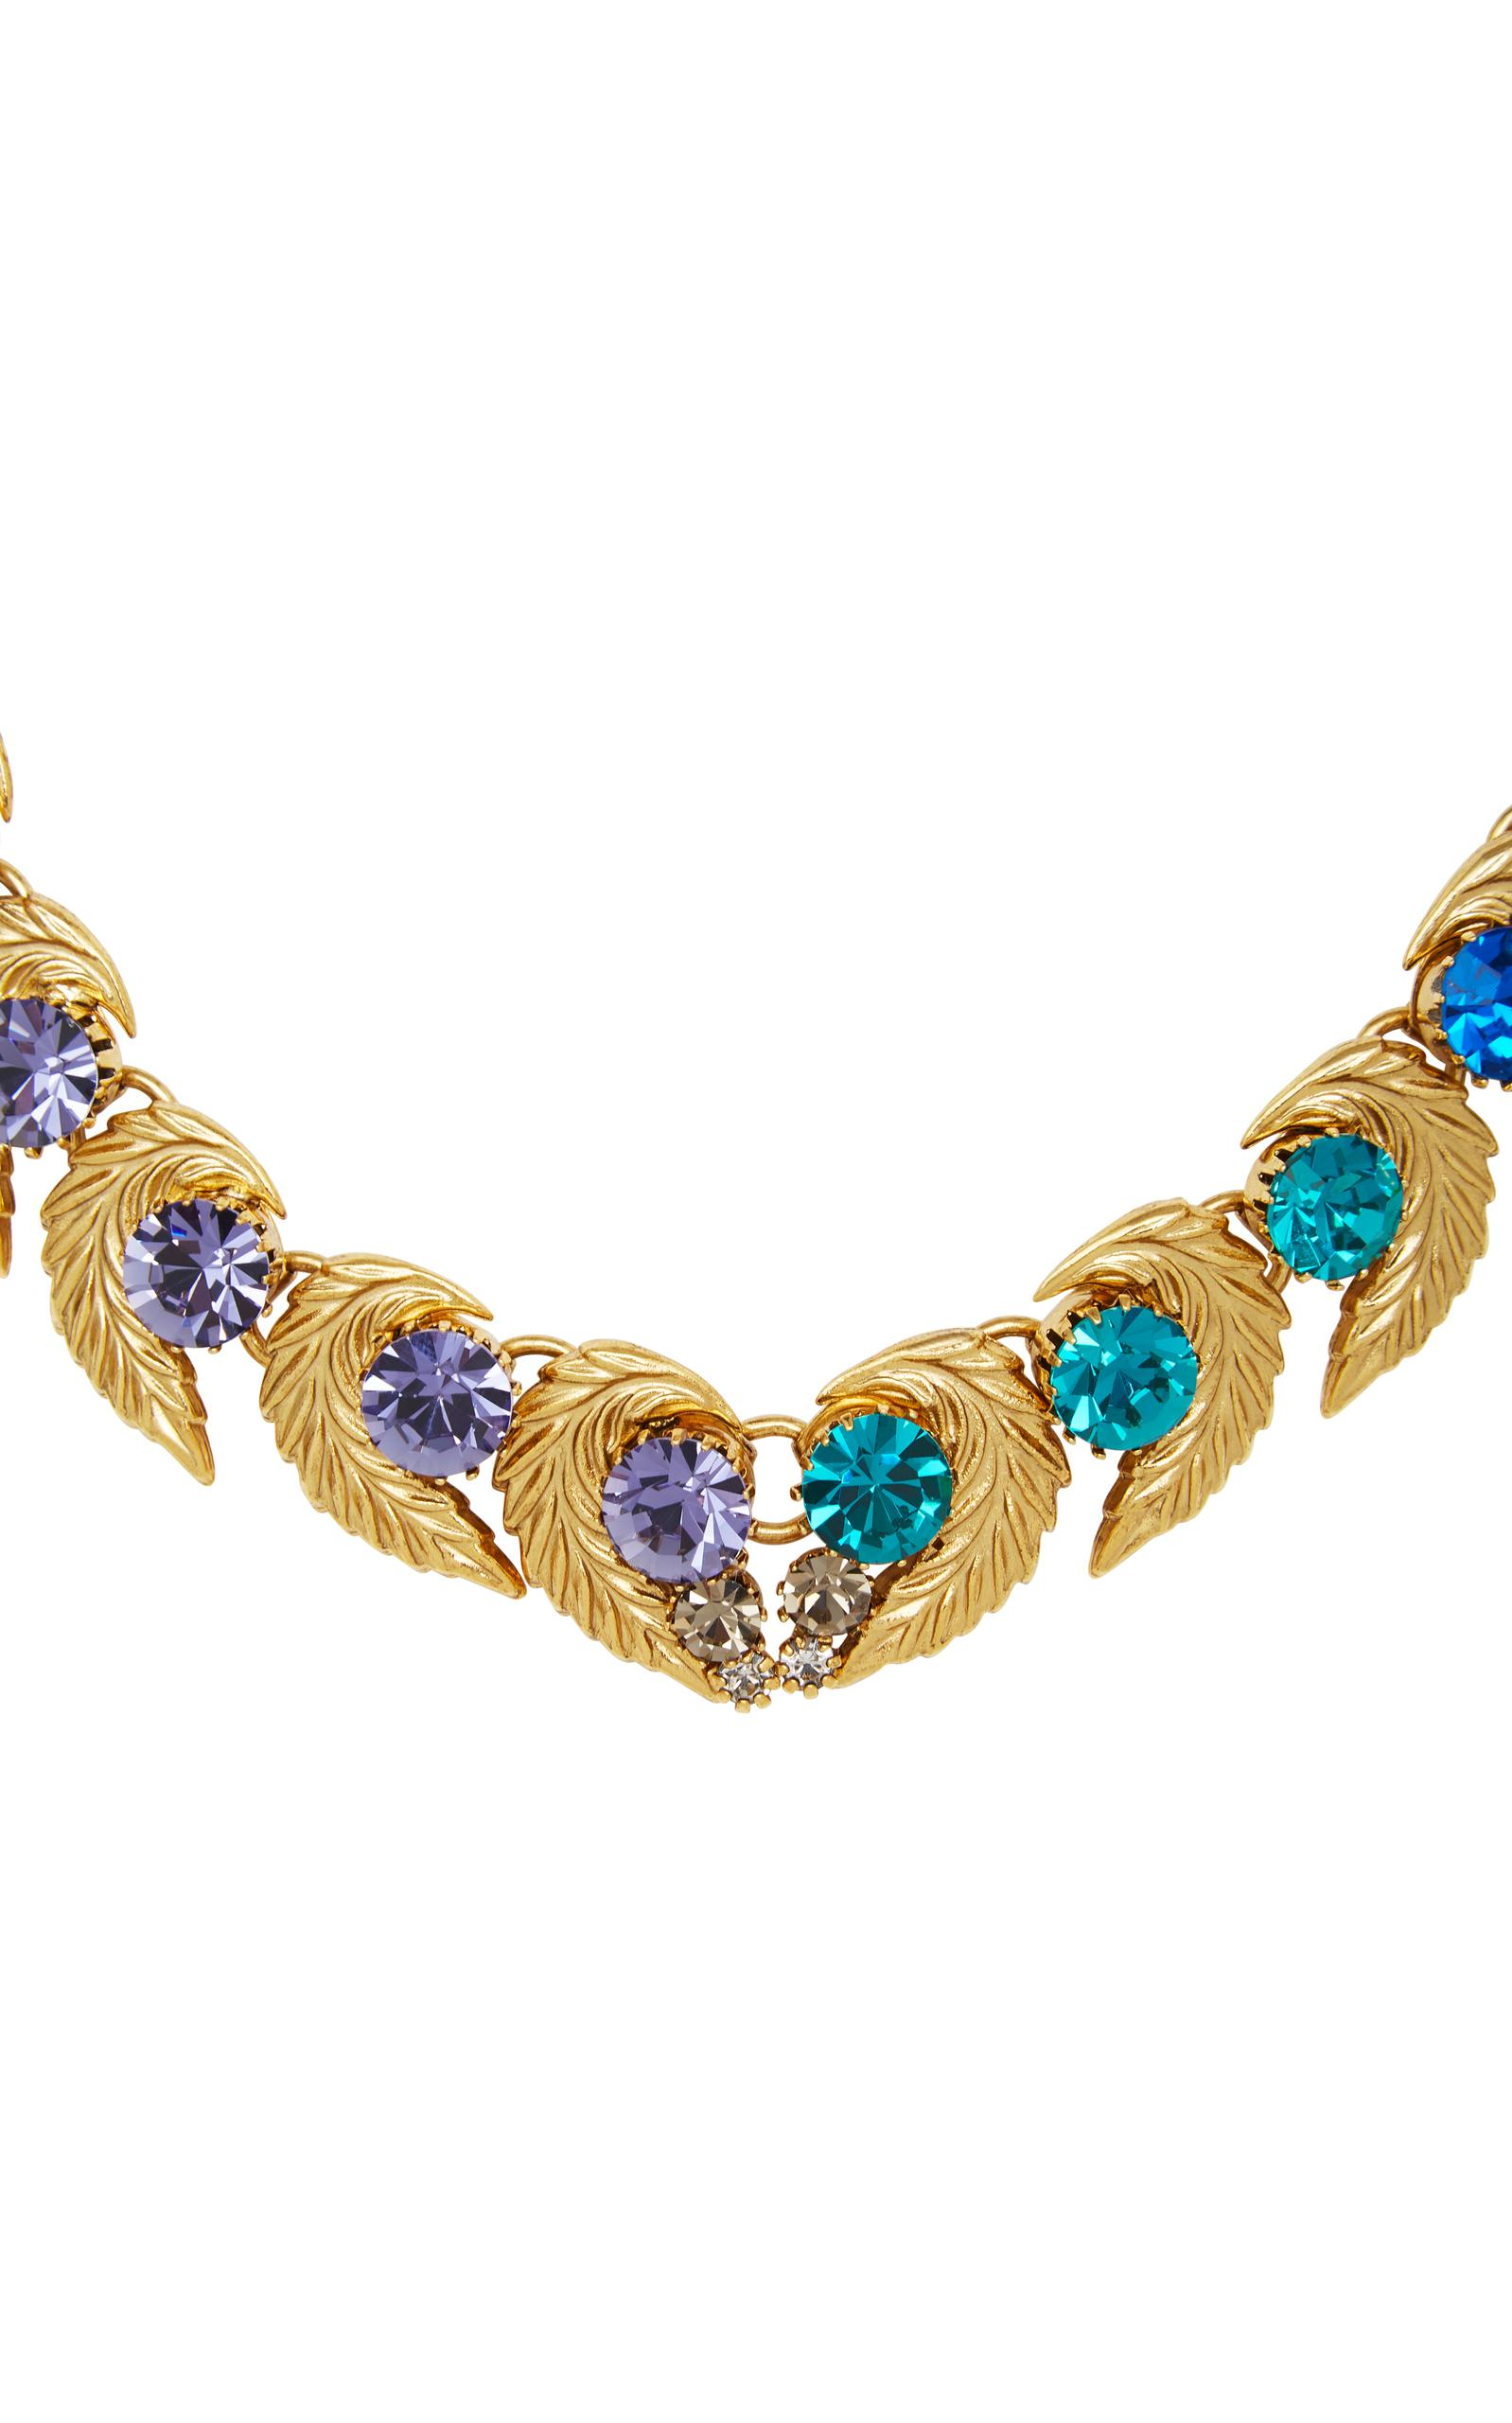 Nicole Romano 18k Gold-plated Leaf And Colored Crystal Necklace in Blue